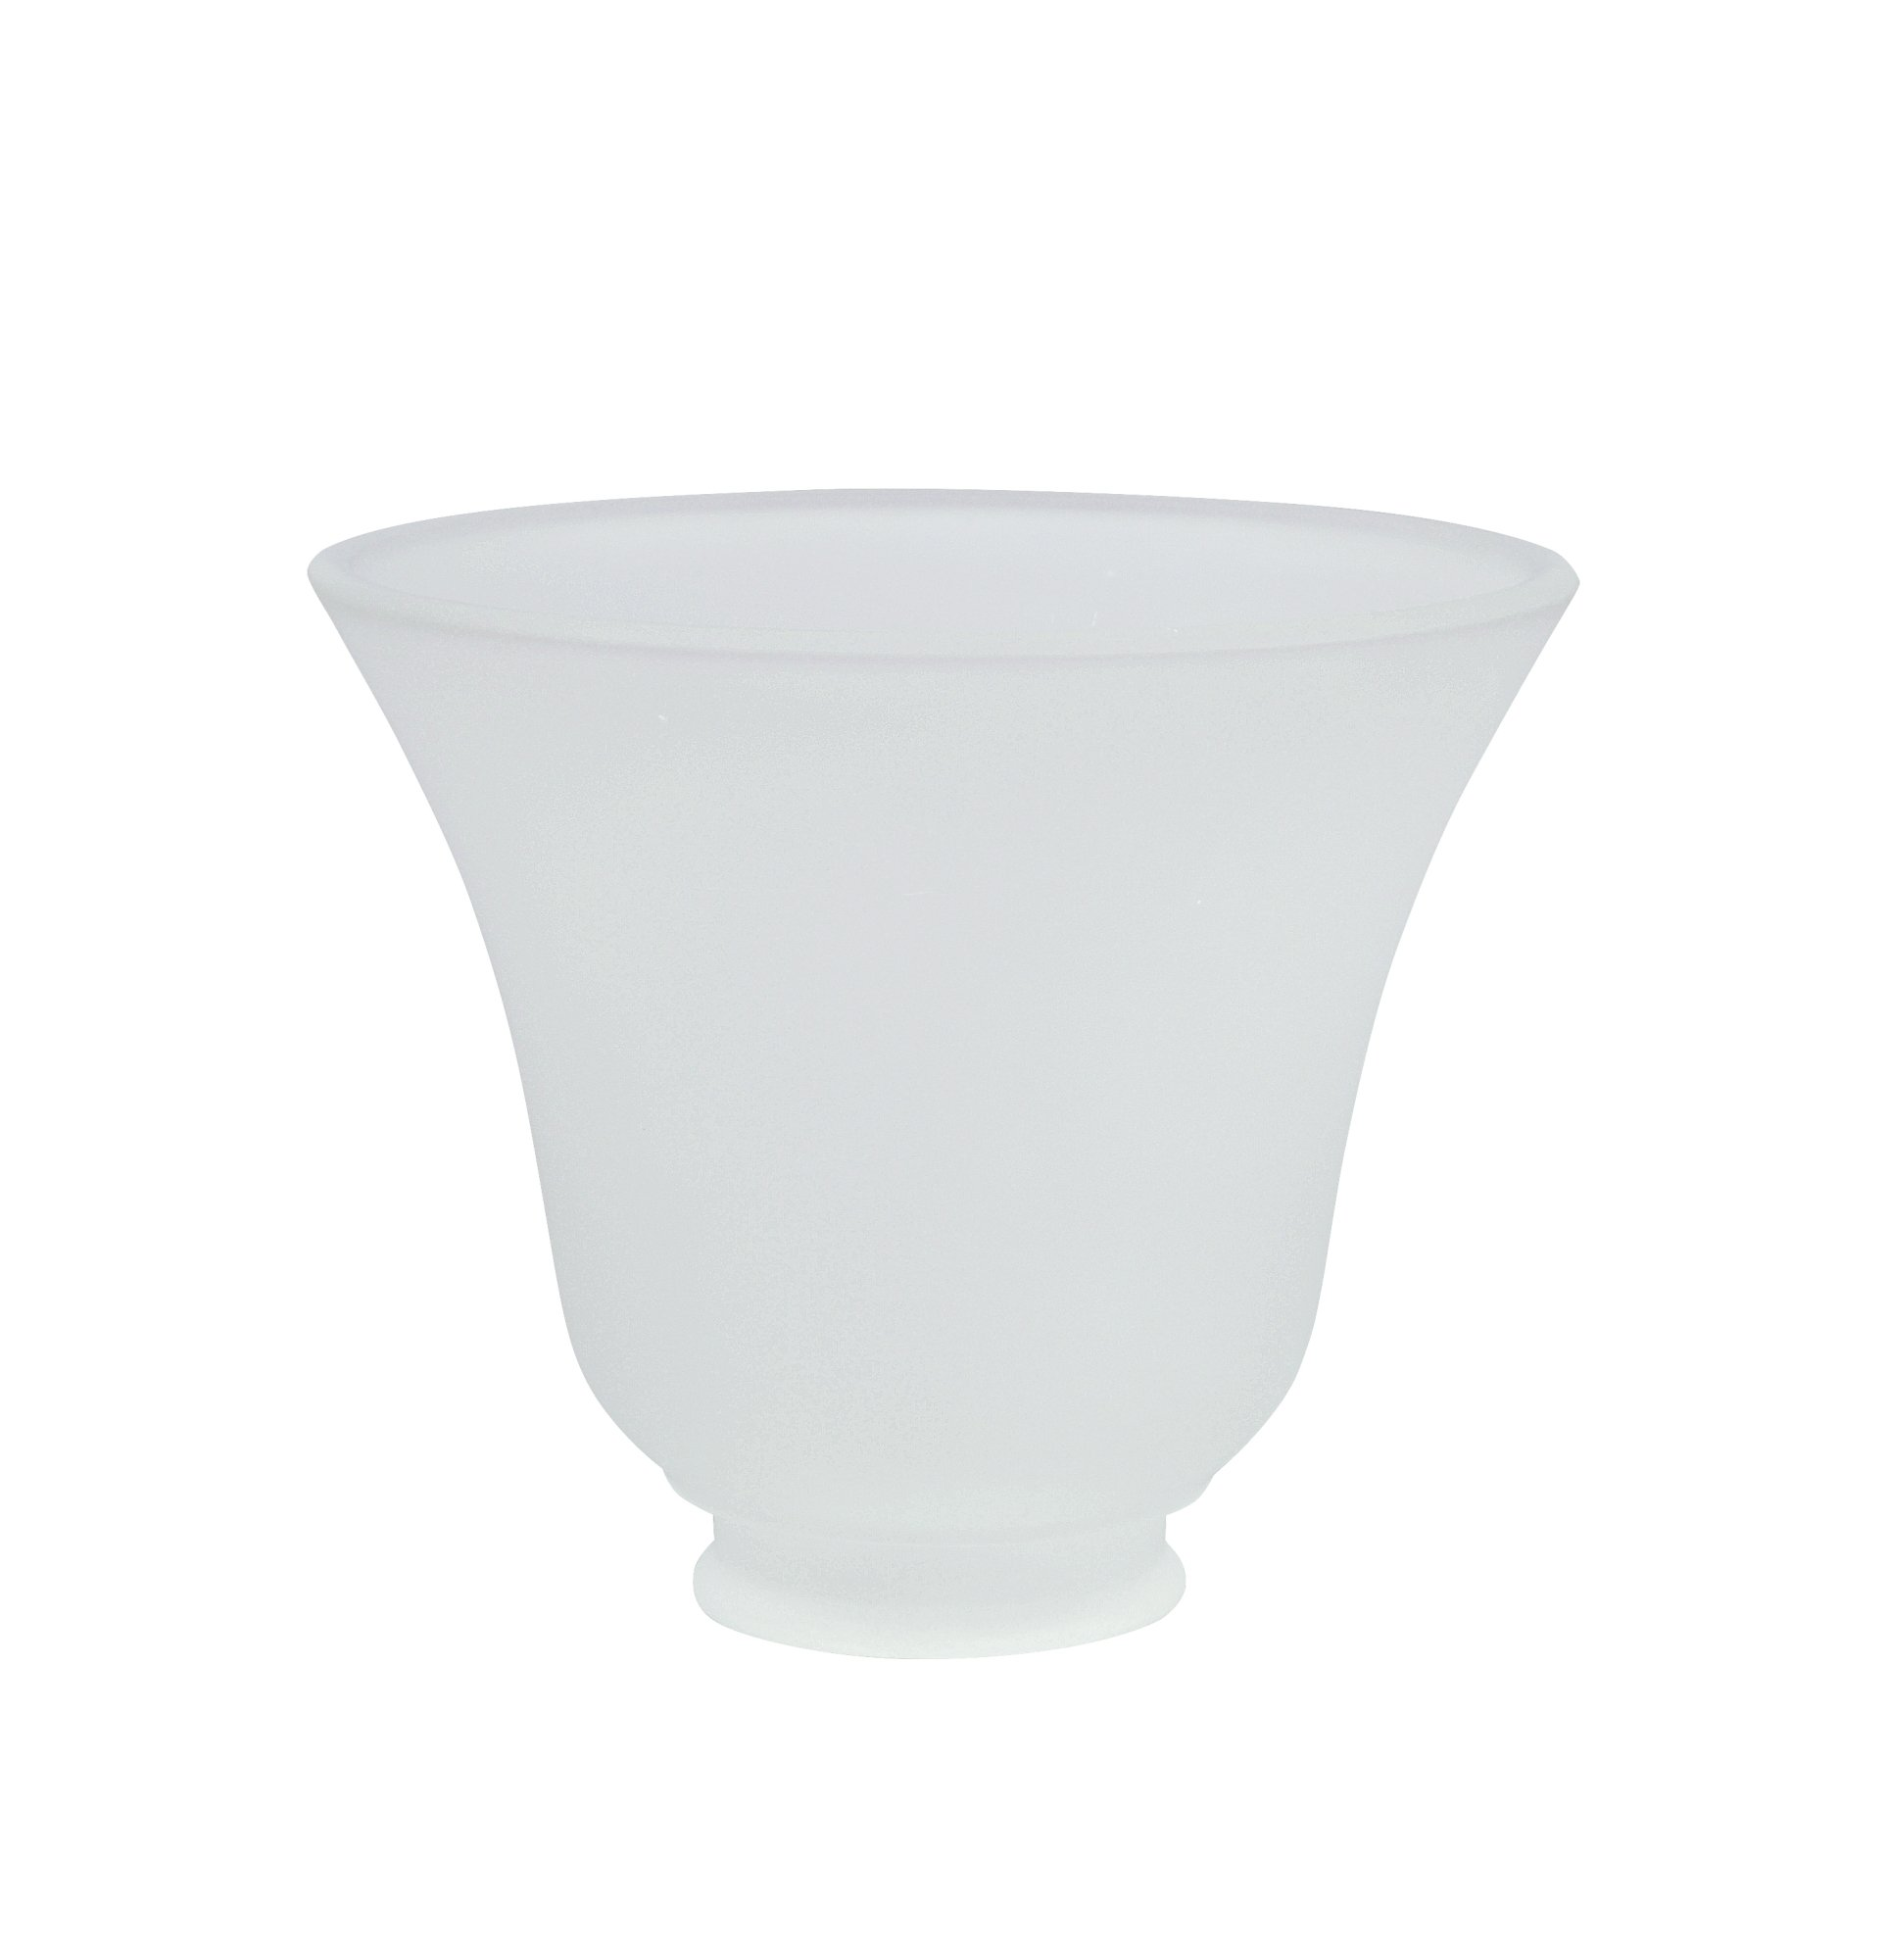 Aspen Creative 23026-4 Transitional Style Replacement Glass Shade, Frosted by Aspen Creative (Image #3)